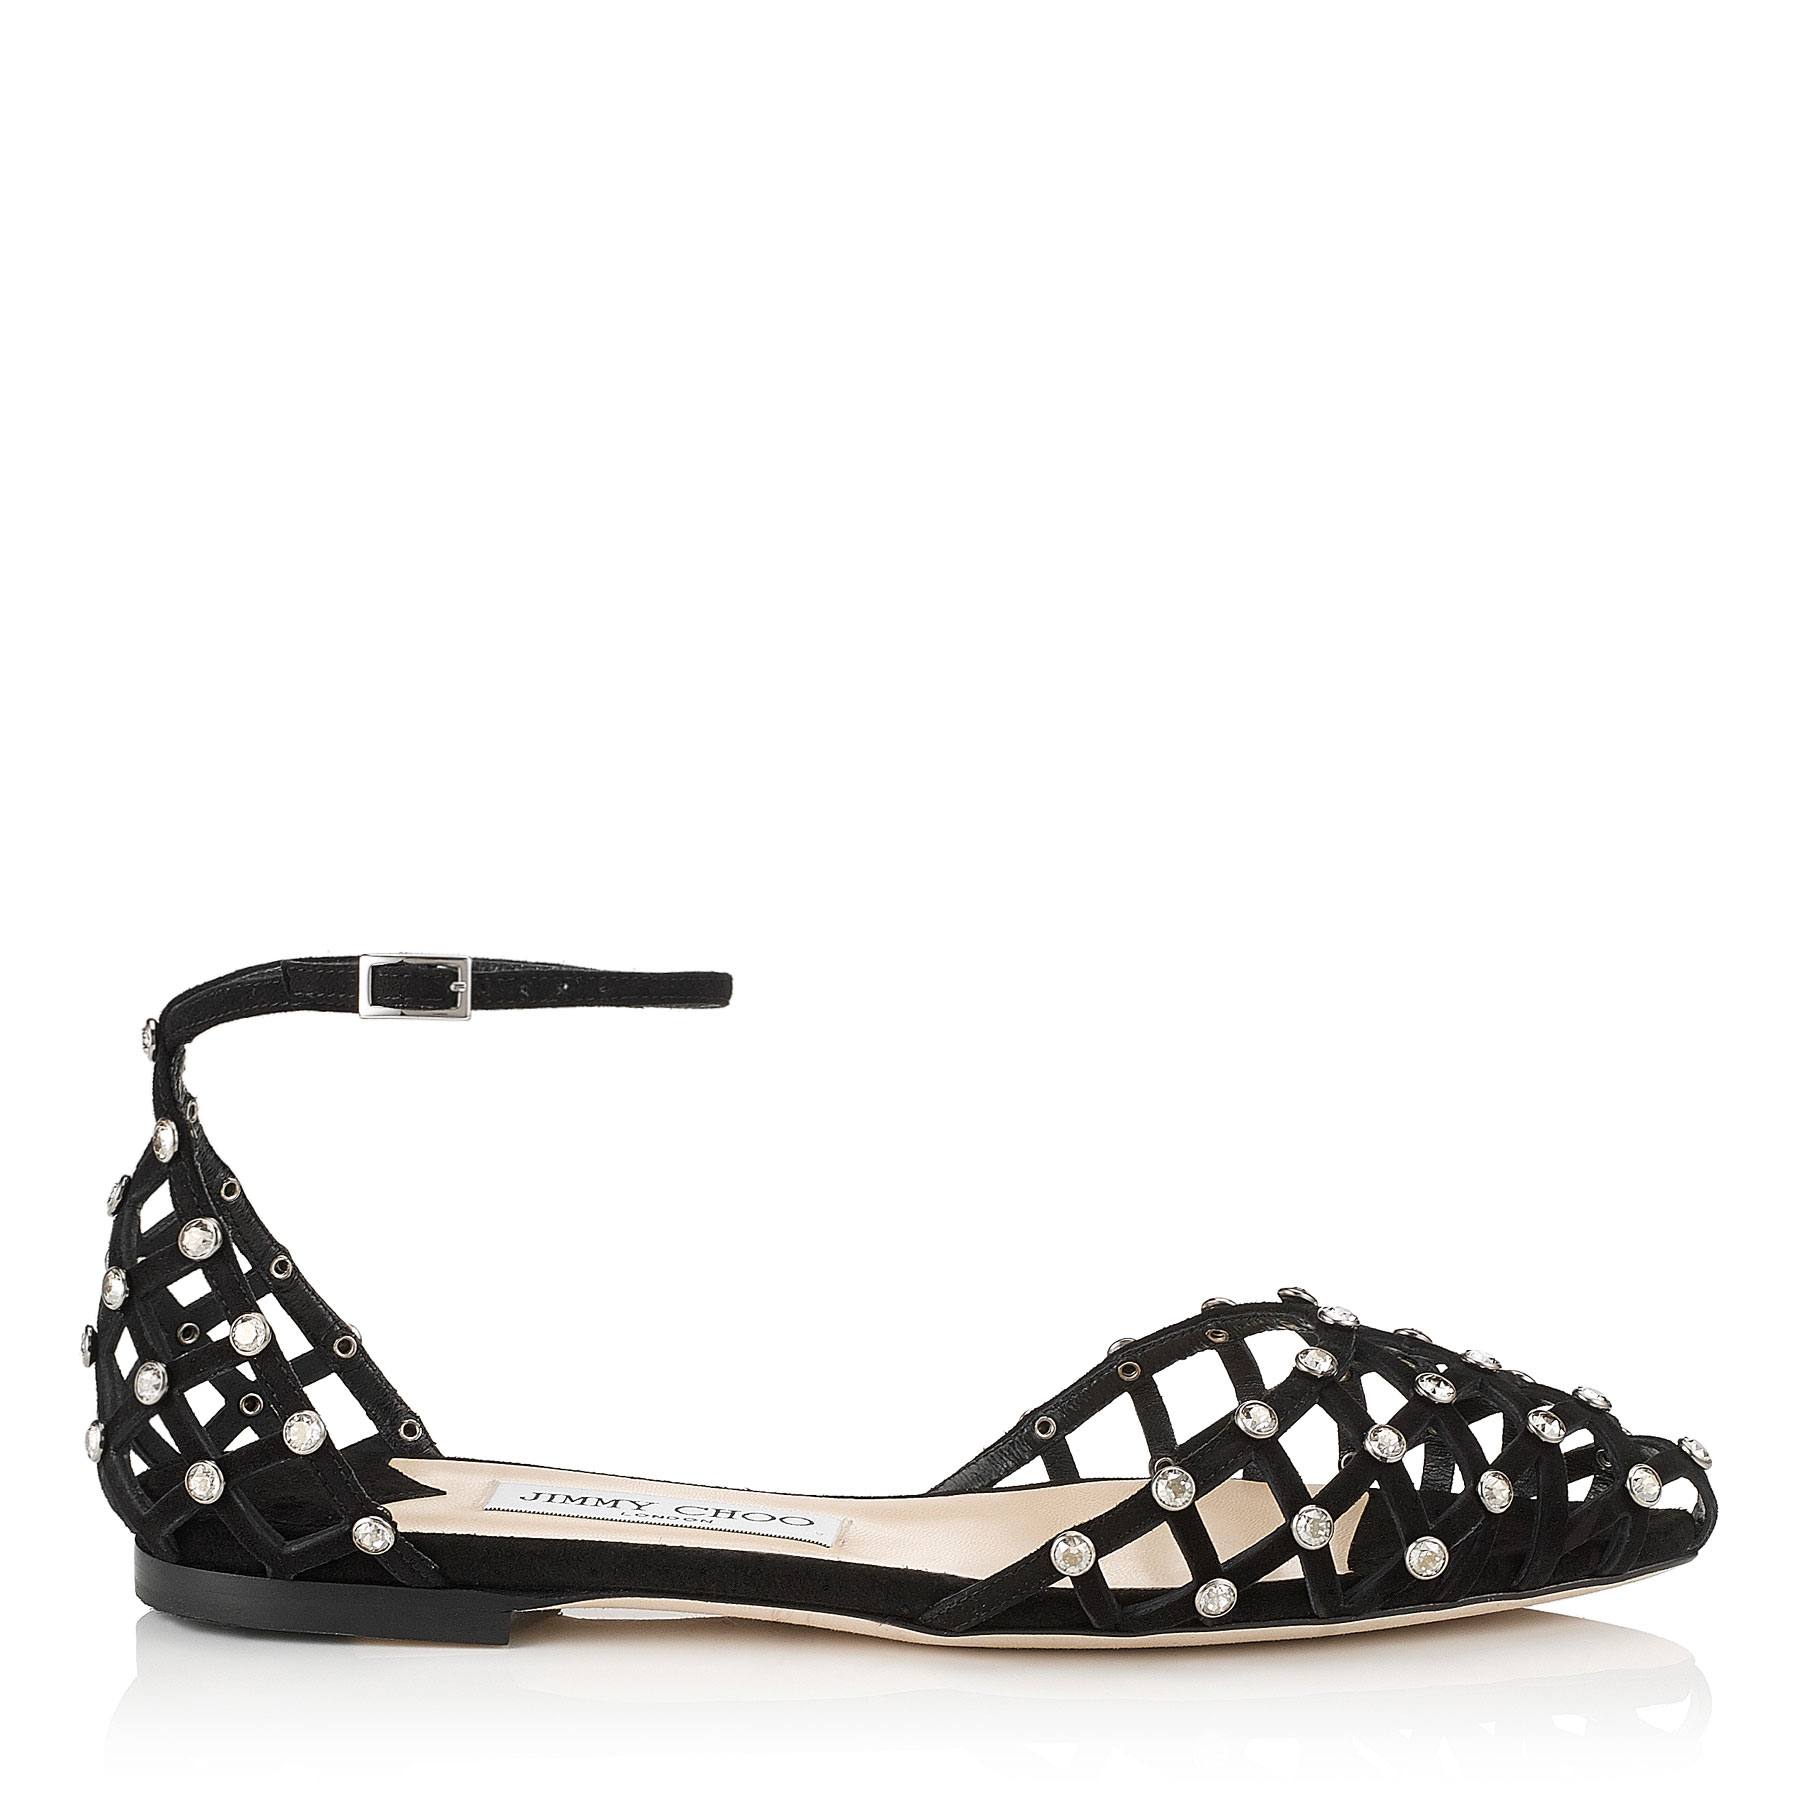 DAVINIA FLAT Black Suede Pointy Toe Shoe Sandals with Crystal Studs